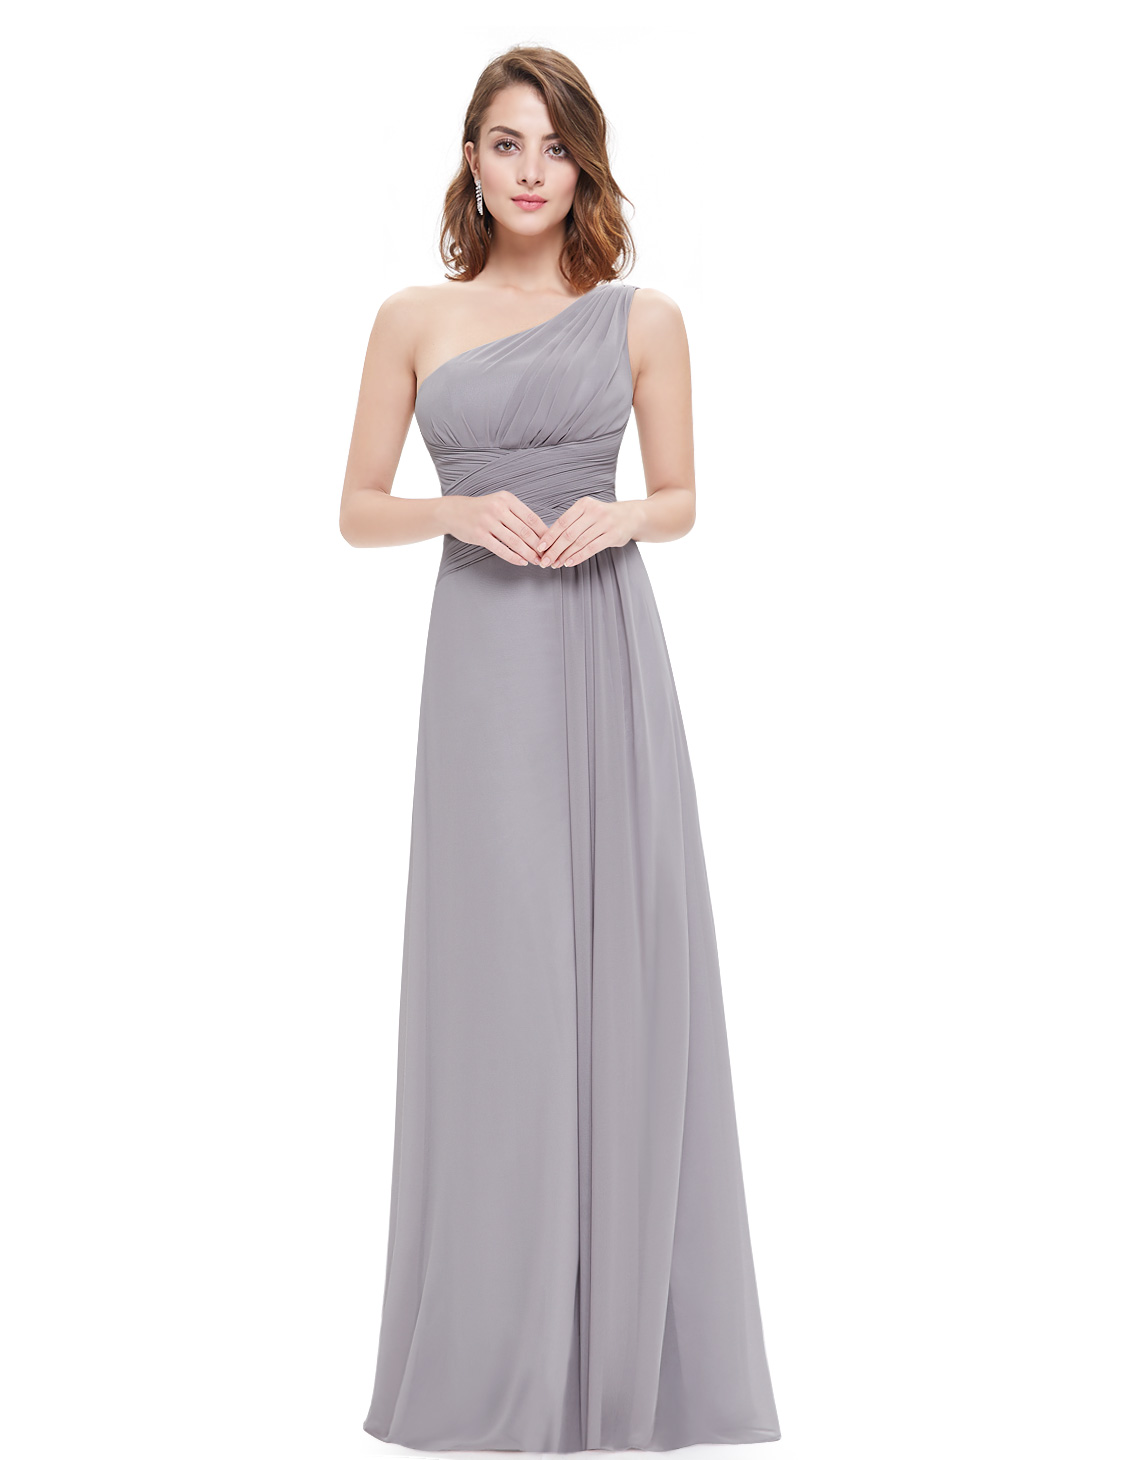 One shoulder bridesmaid dress mother of bride wedding for Wedding dresses for mother of bride